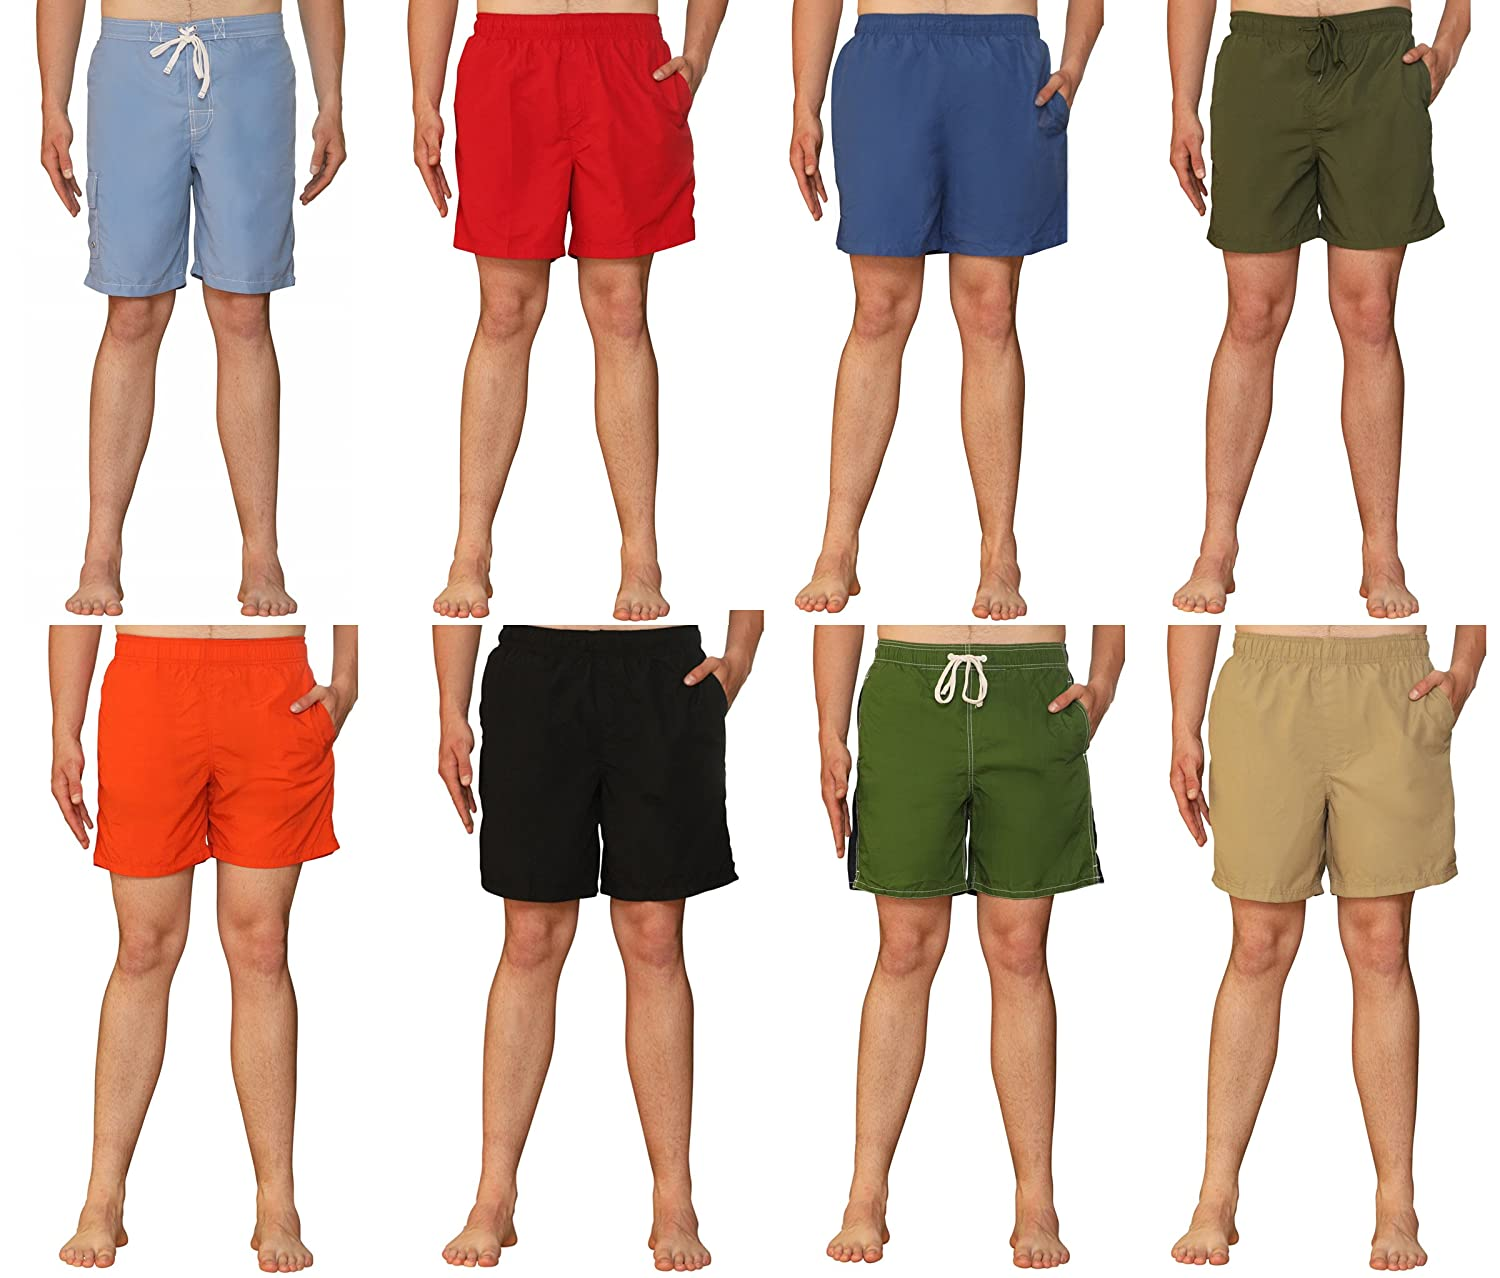 df6febbf99 Merona Men's Mesh Lining Boardshorts | Amazon.com